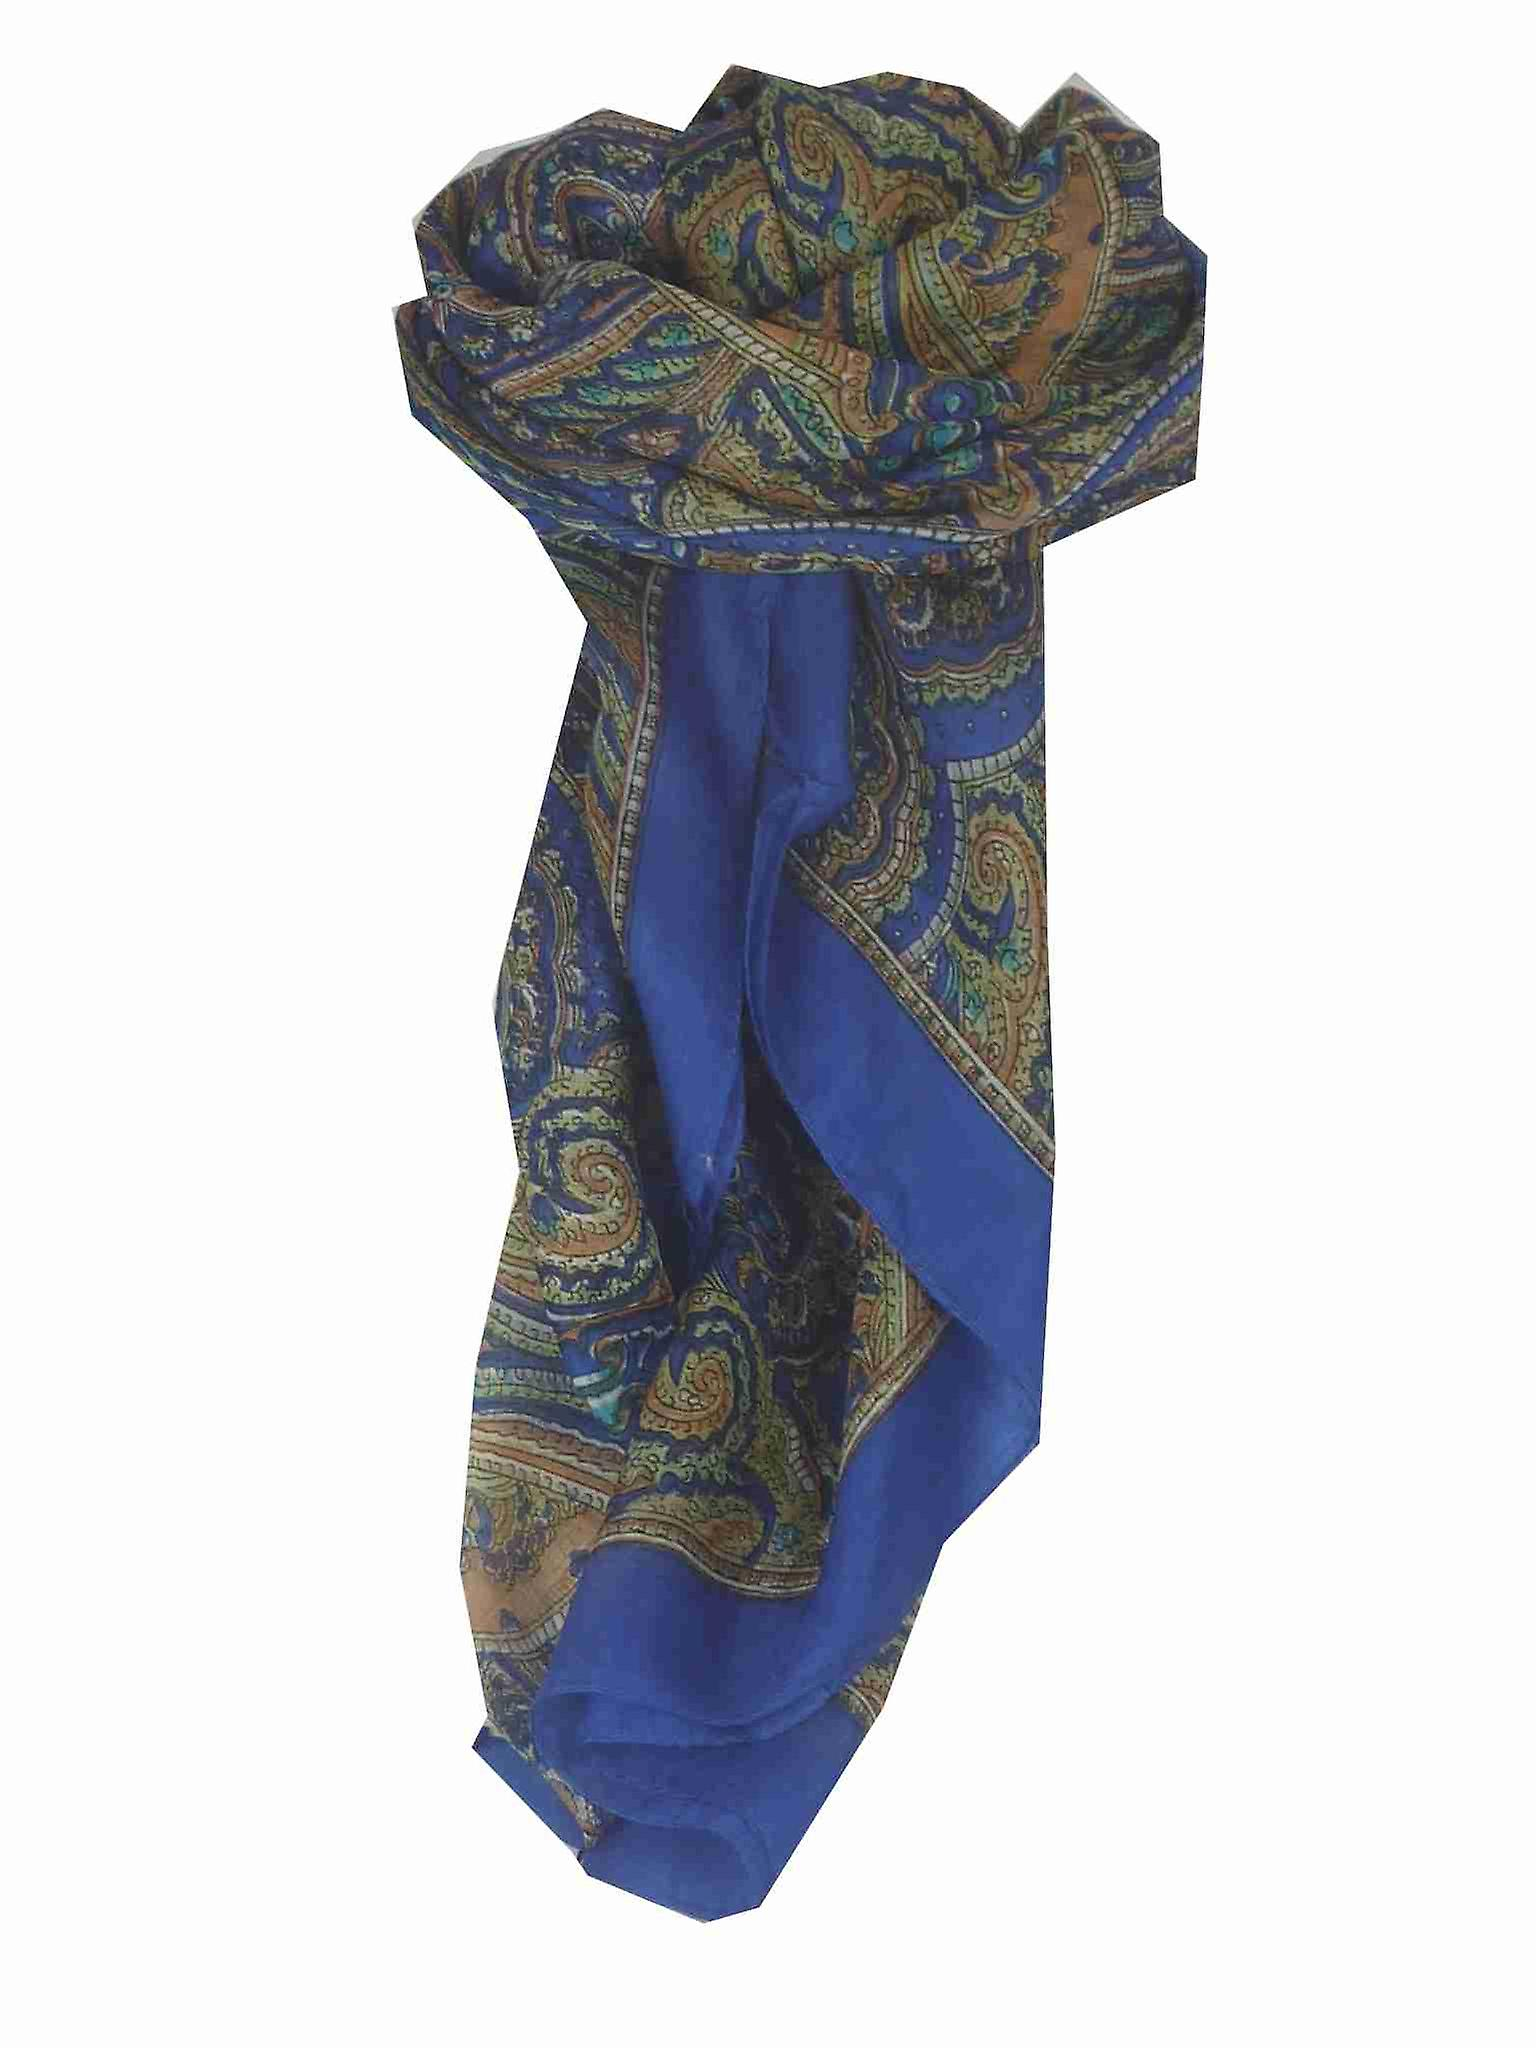 Mulberry Silk Traditional Square Scarf Shimla Blue by Pashmina & Silk